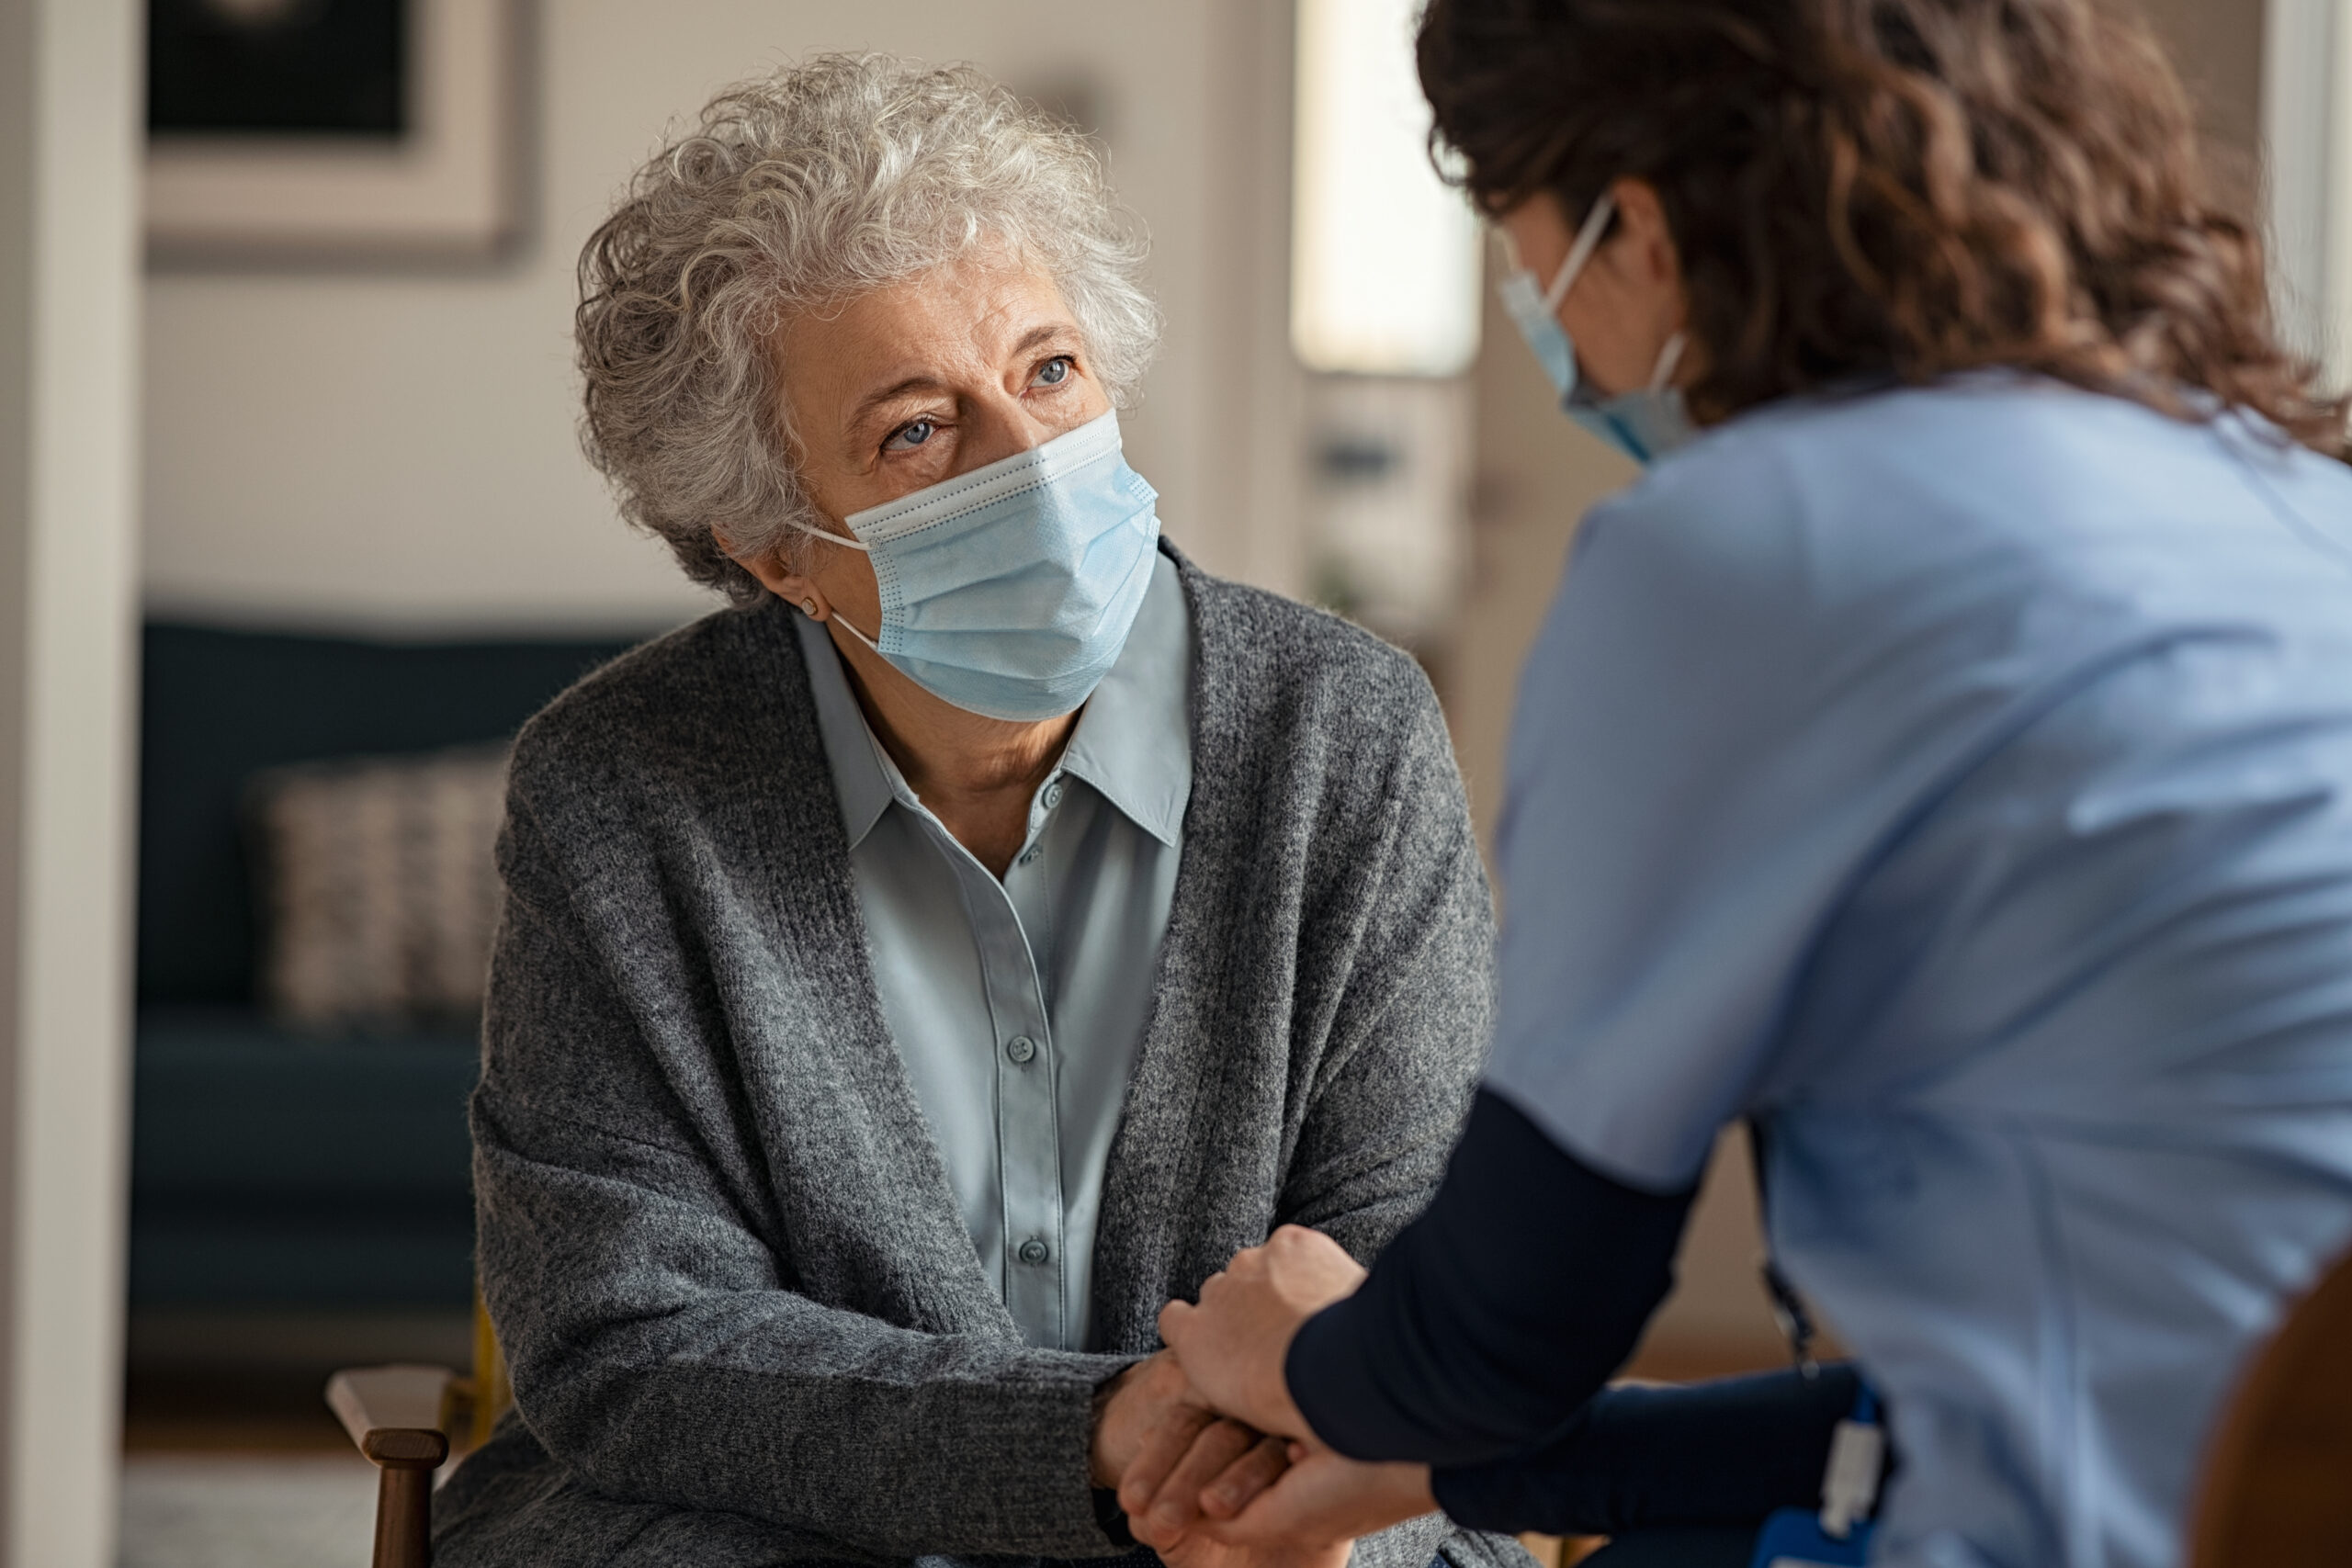 Female doctor consoling woman wearing face mask during home visit